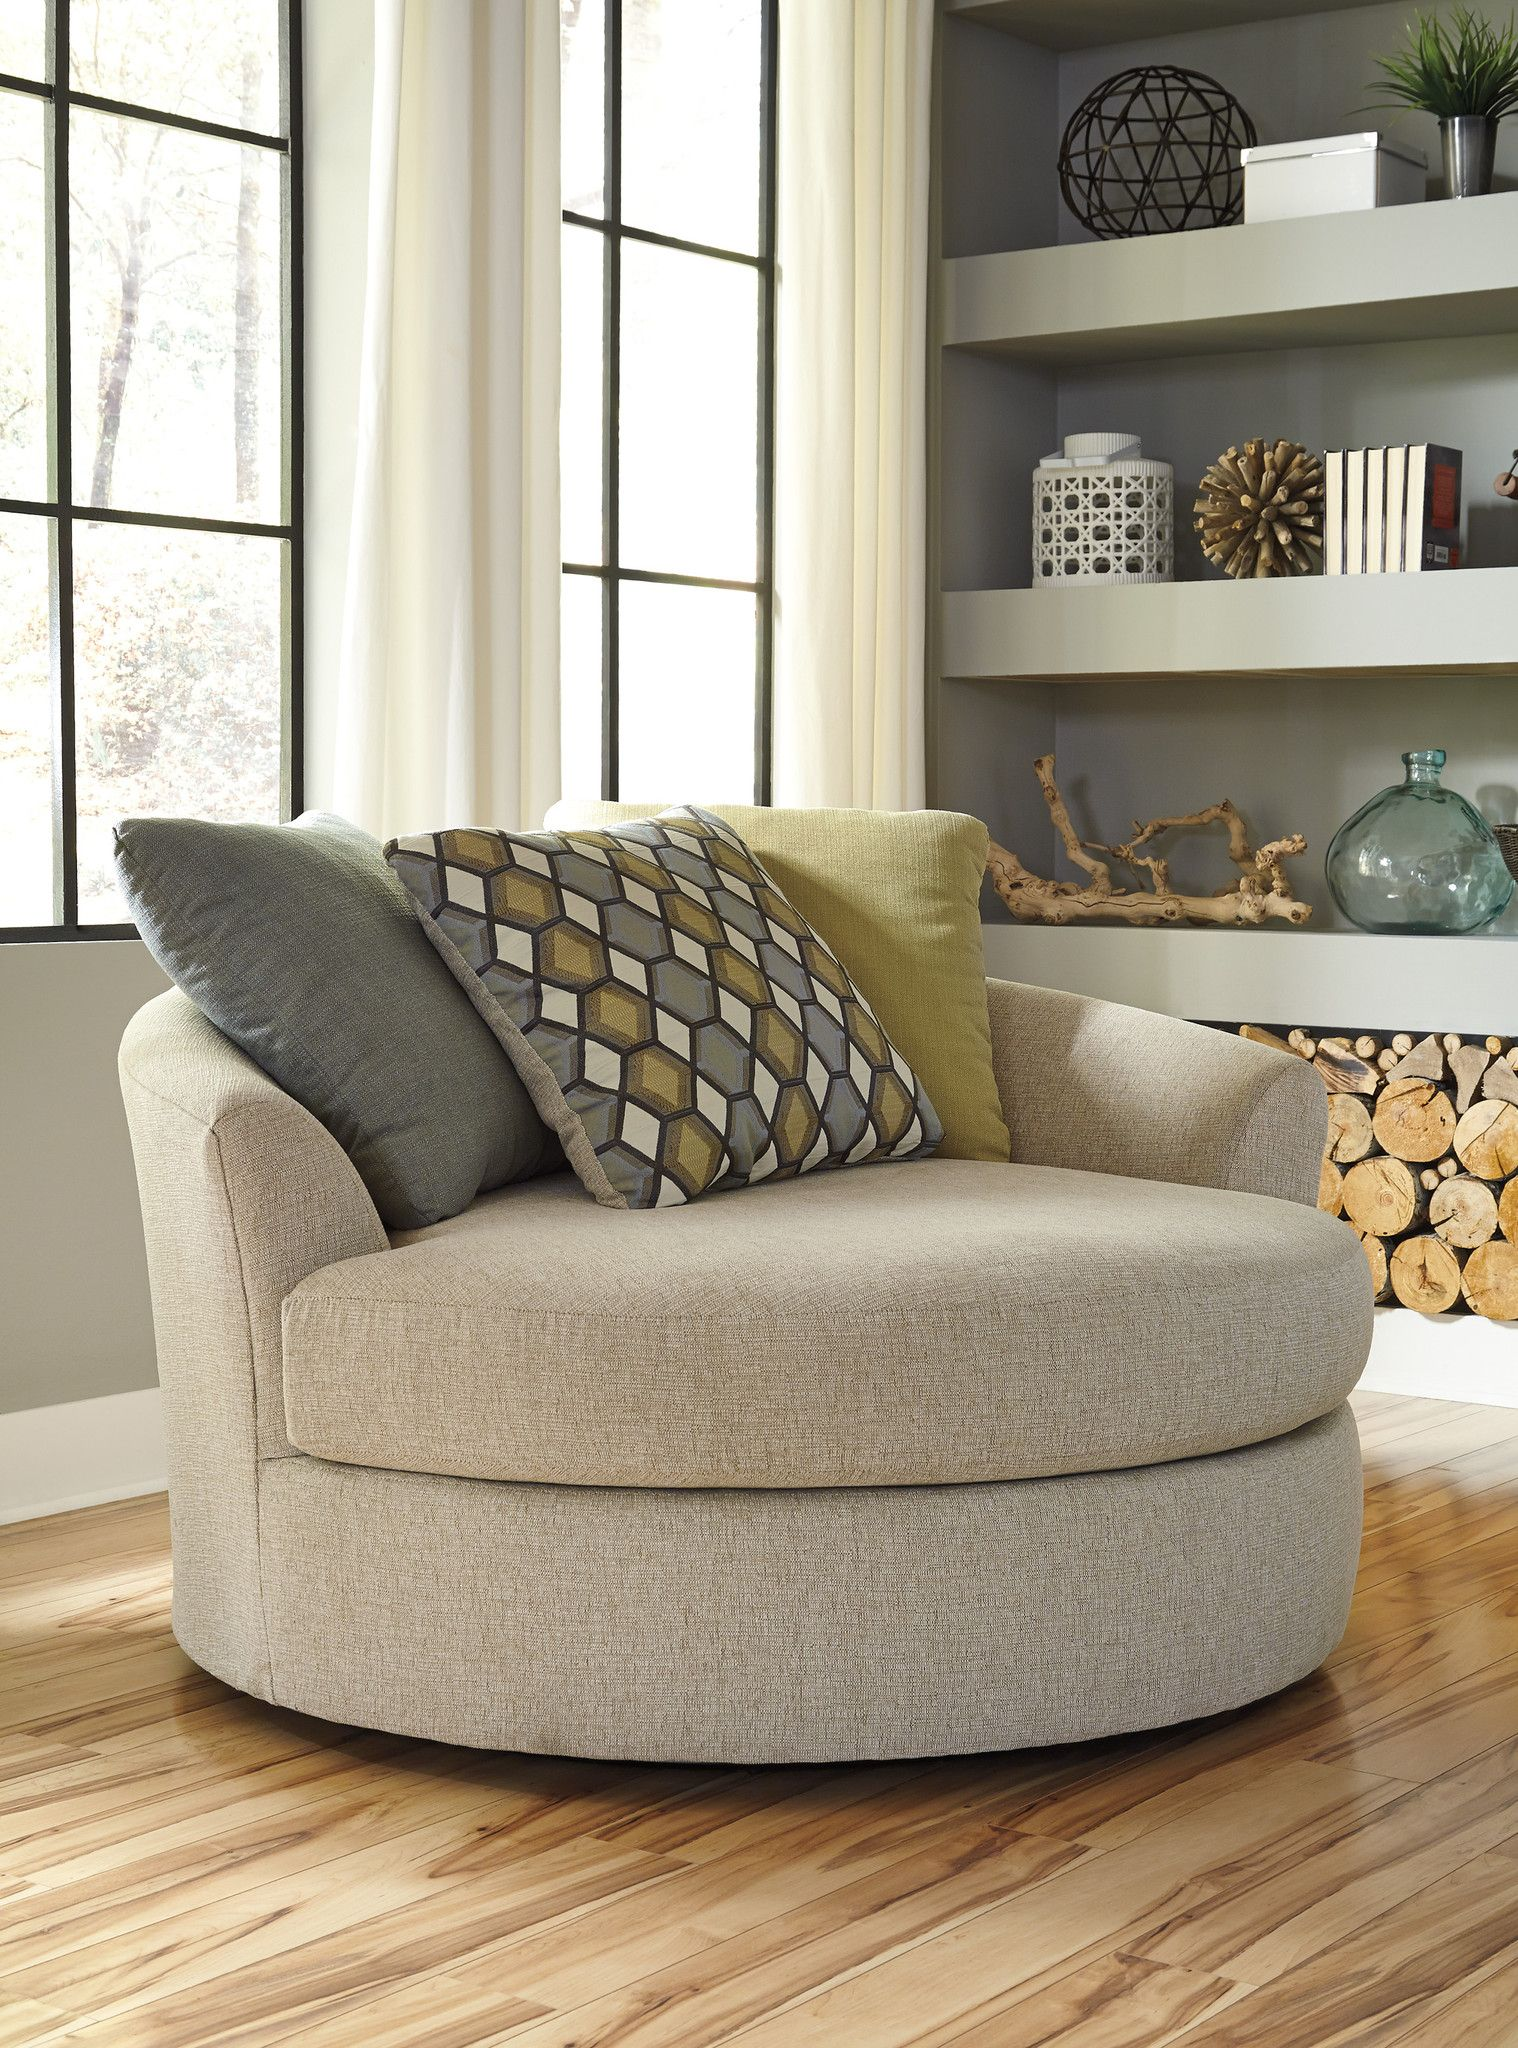 Oversized Swivel Chairs For Living Room Chair Design Vector Casheral Accent Rooms